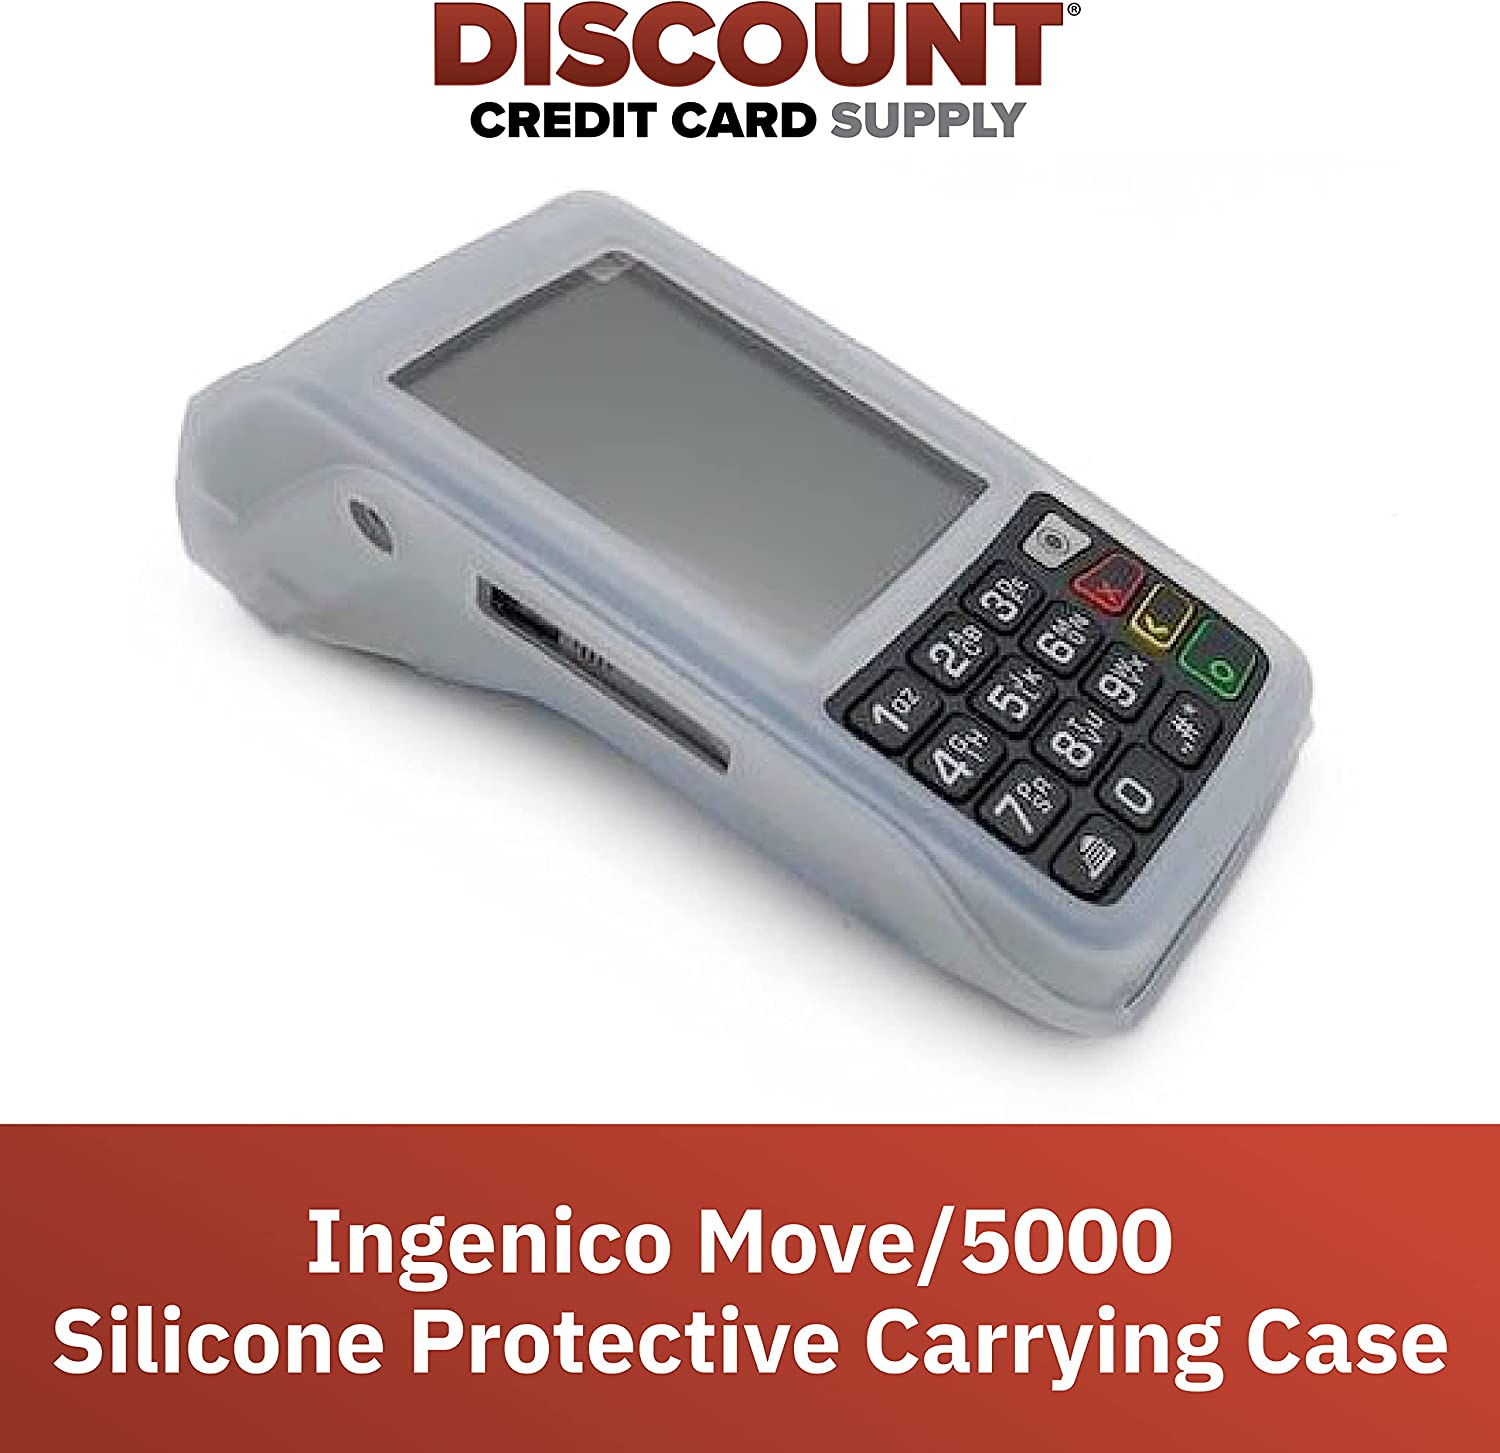 Discount Credit Card Supply Ingenico Move/5000 Protective Carrying Case, Translucent Silicone Credit Card Terminal Sleeve